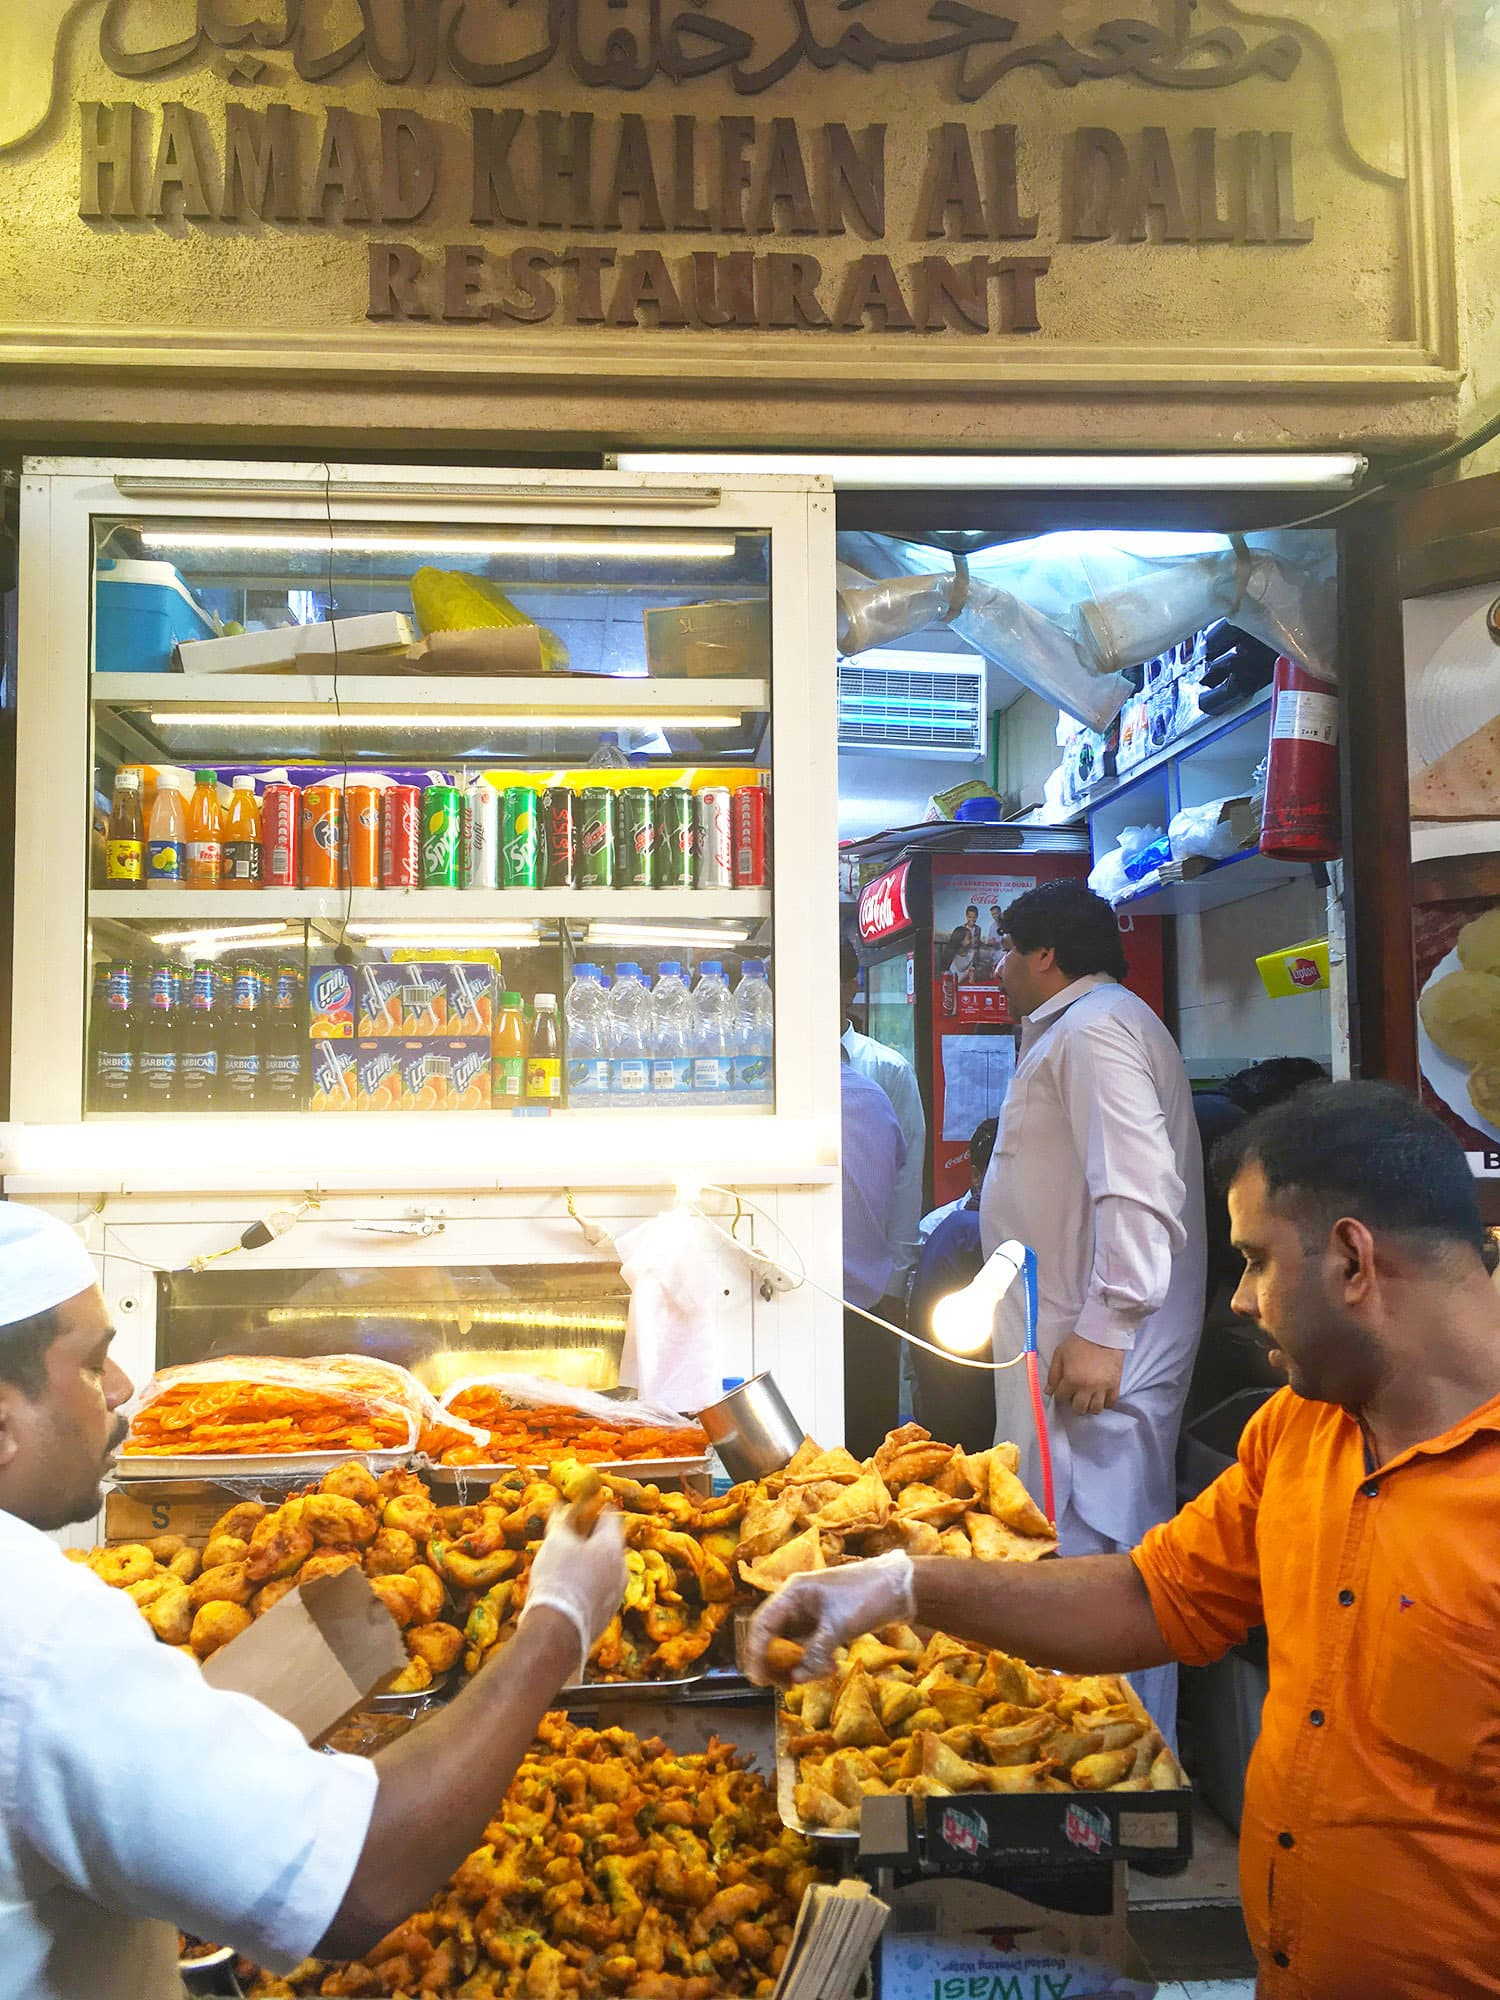 Pakistani and Indian snacks are popular among the locals as well as visitors and are easily found in the *souk*.